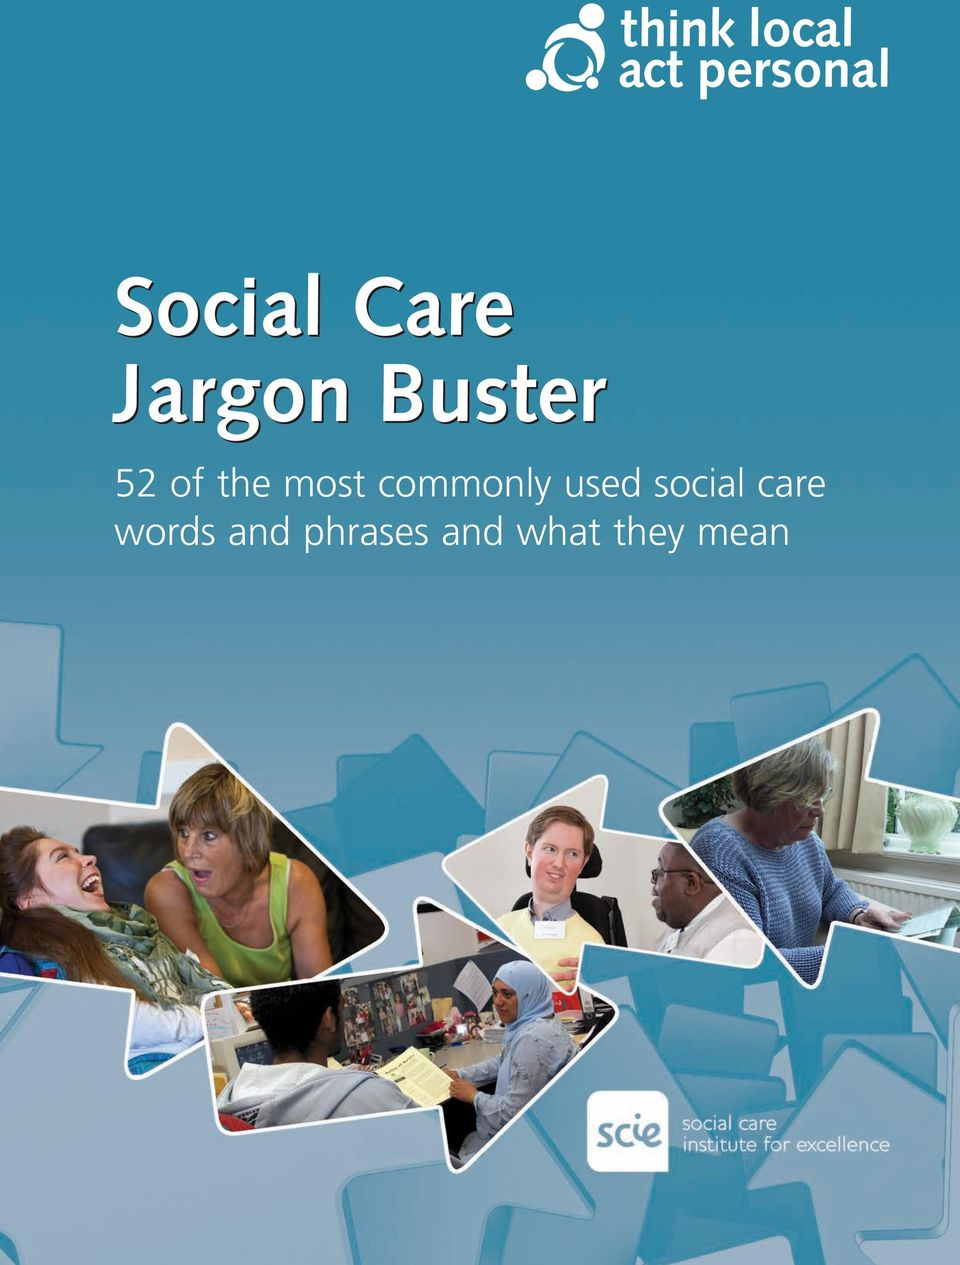 used social care words